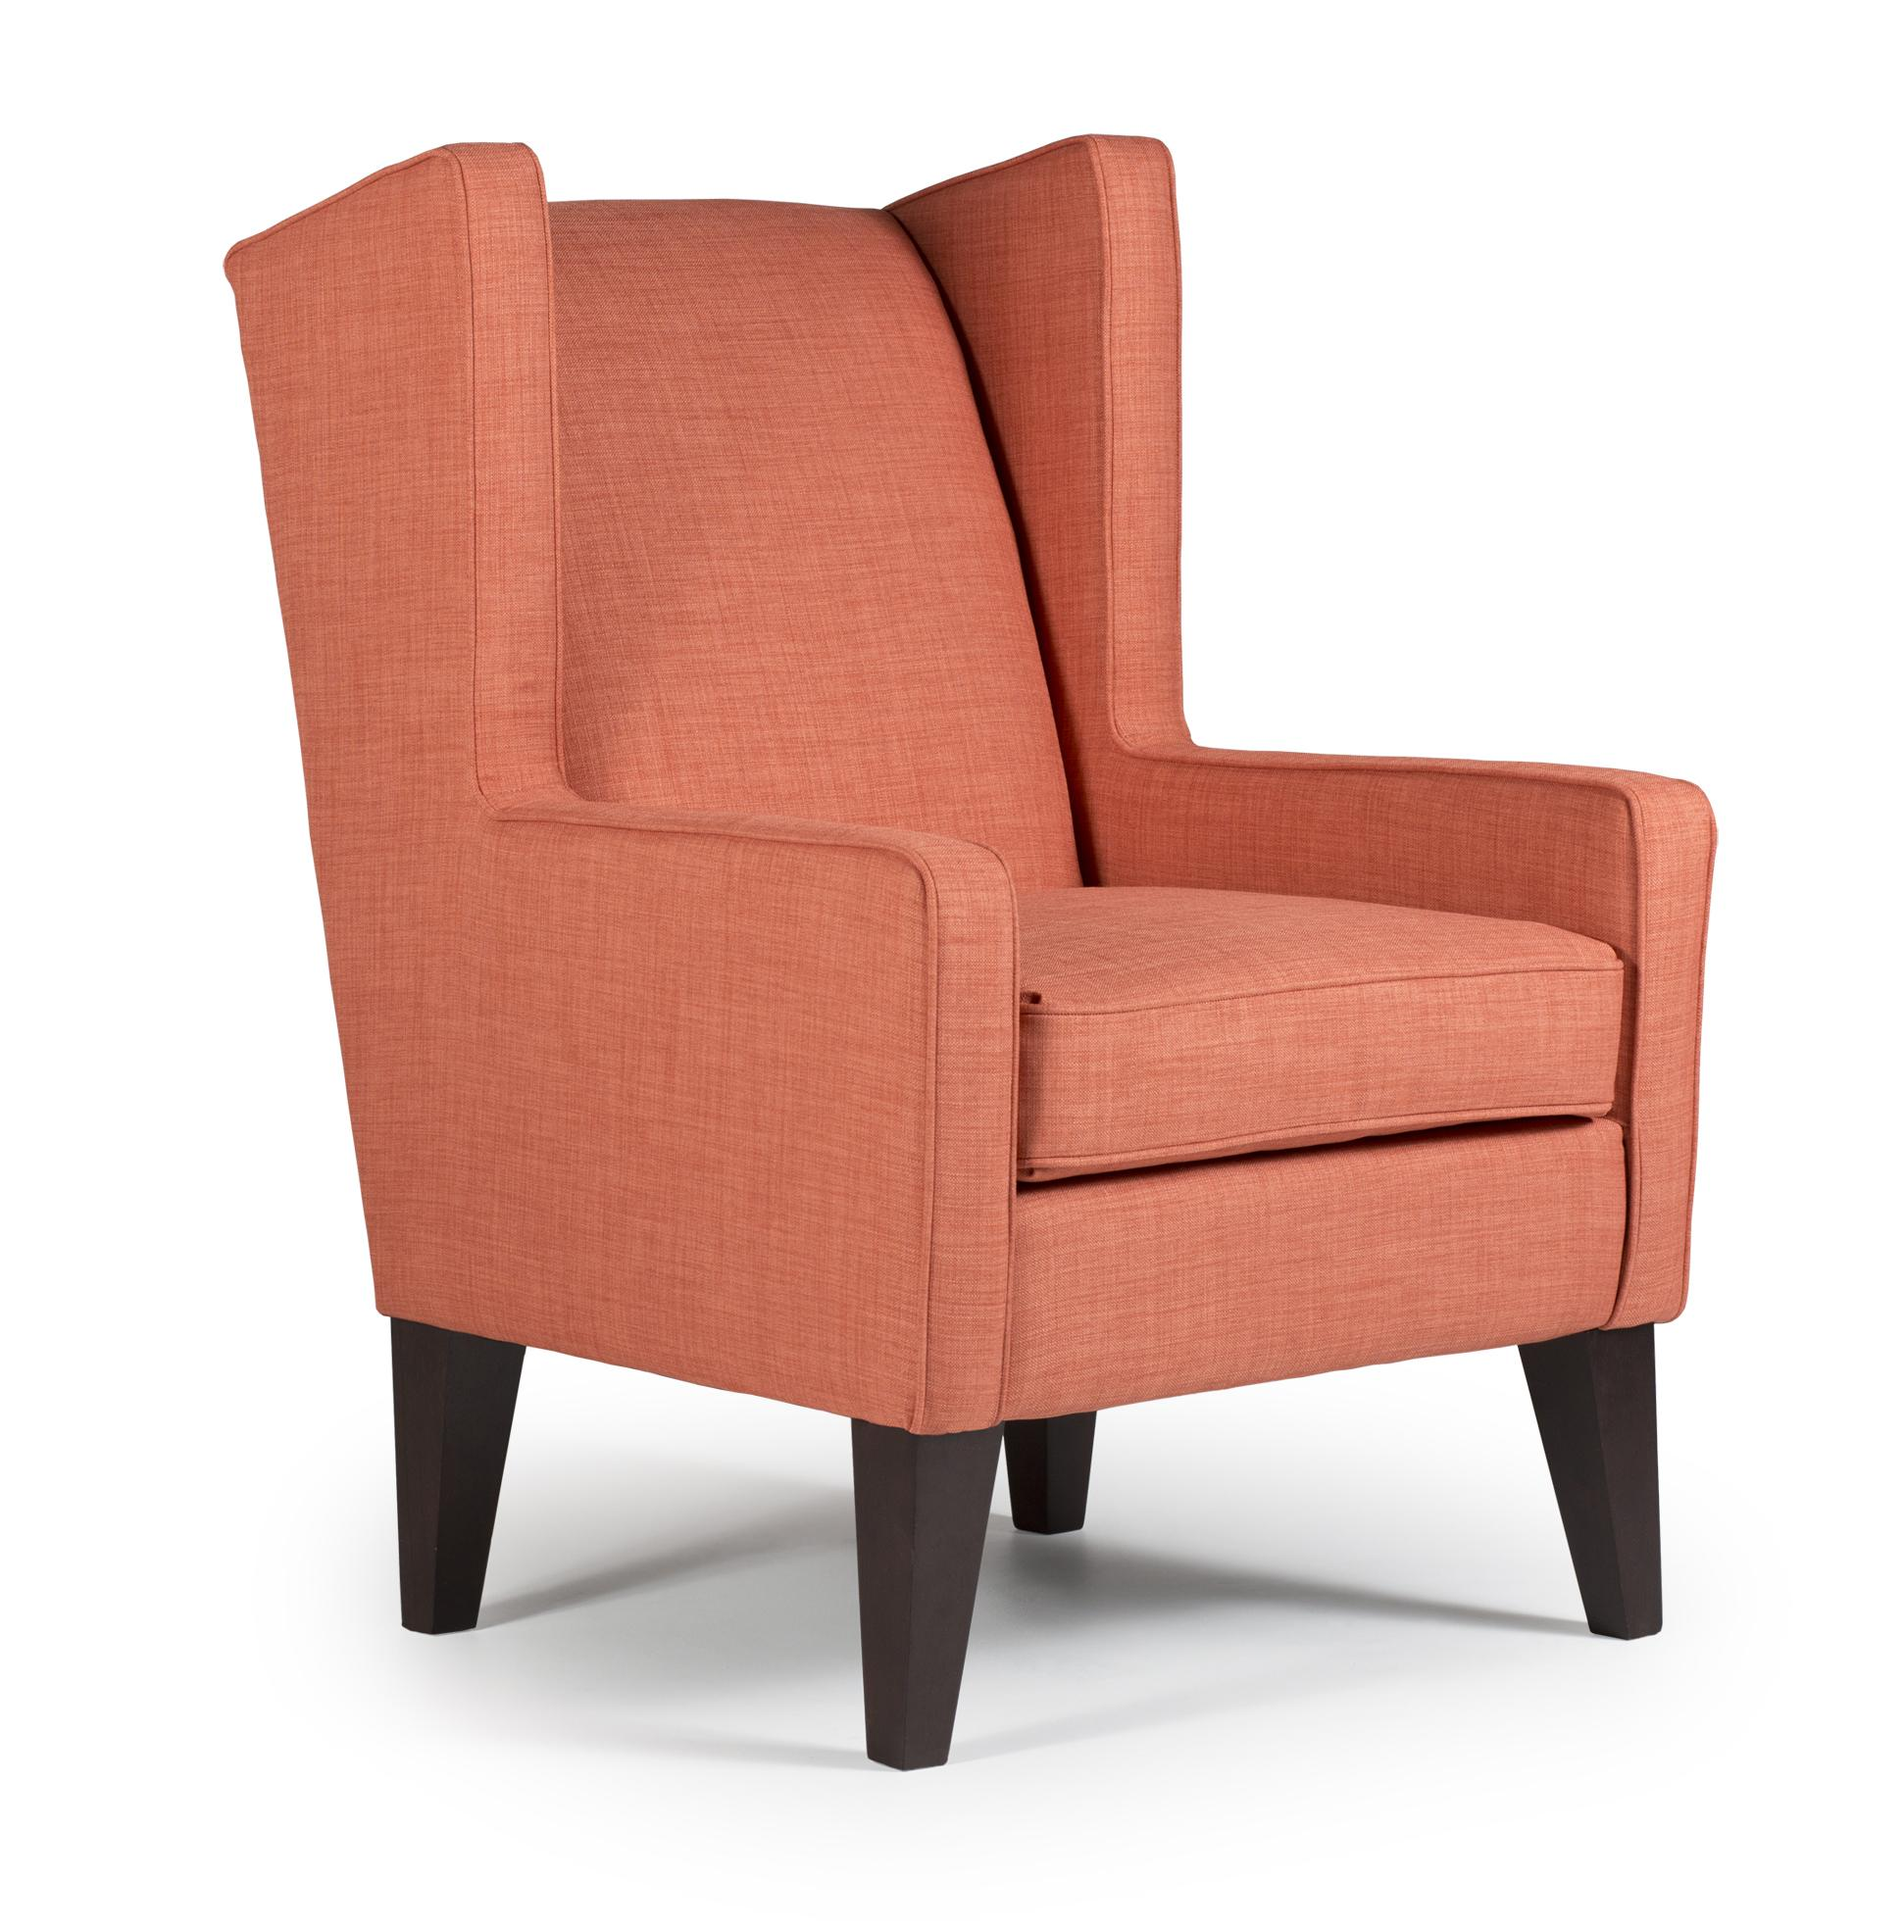 Amazing Best Home Furnishings Chairs - Wing Back Wing Chair - Item Number: modern wingback chair